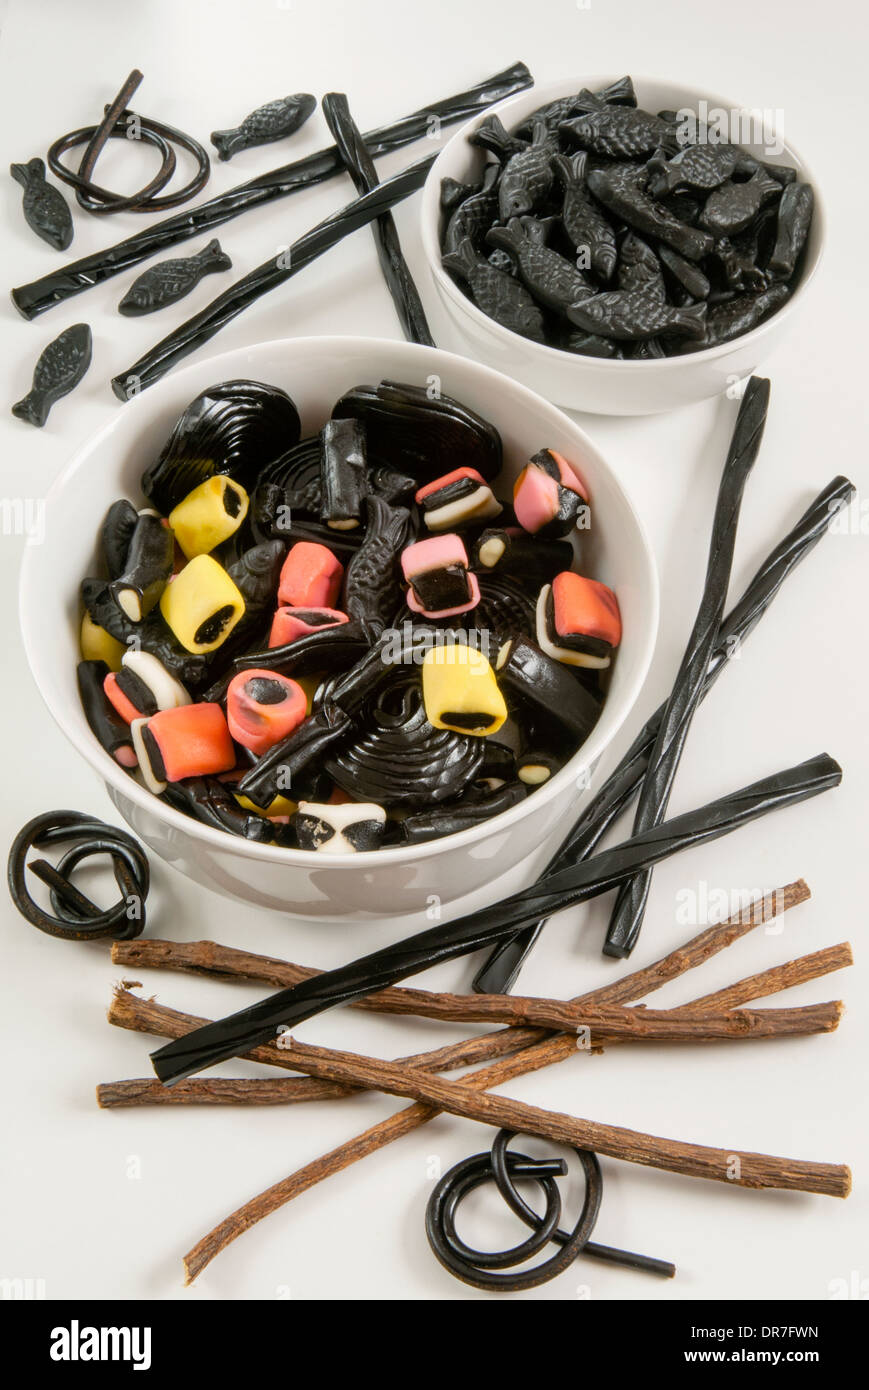 Liquorice roots and liquorice sweets - Stock Image